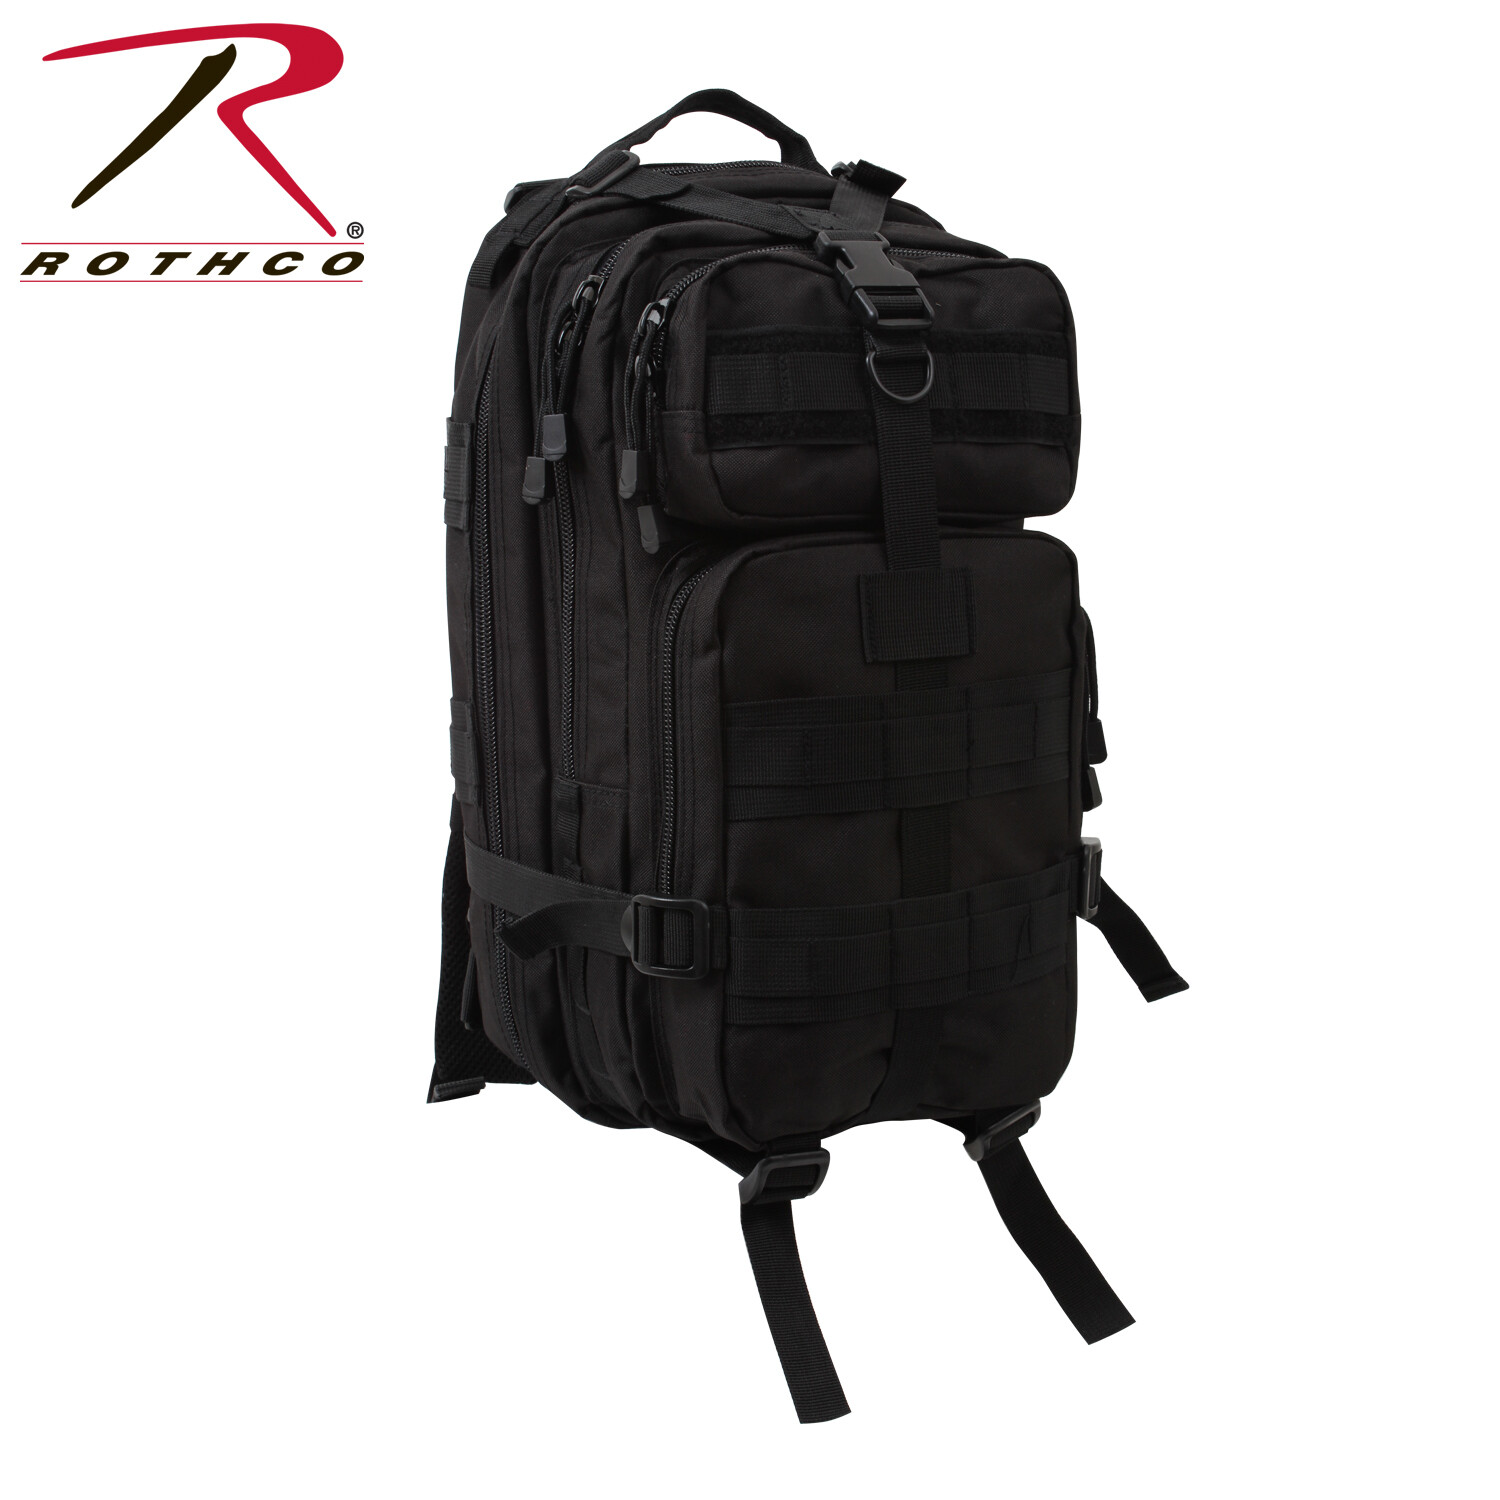 Rothco, 2287, Medium Transport Pack, Black